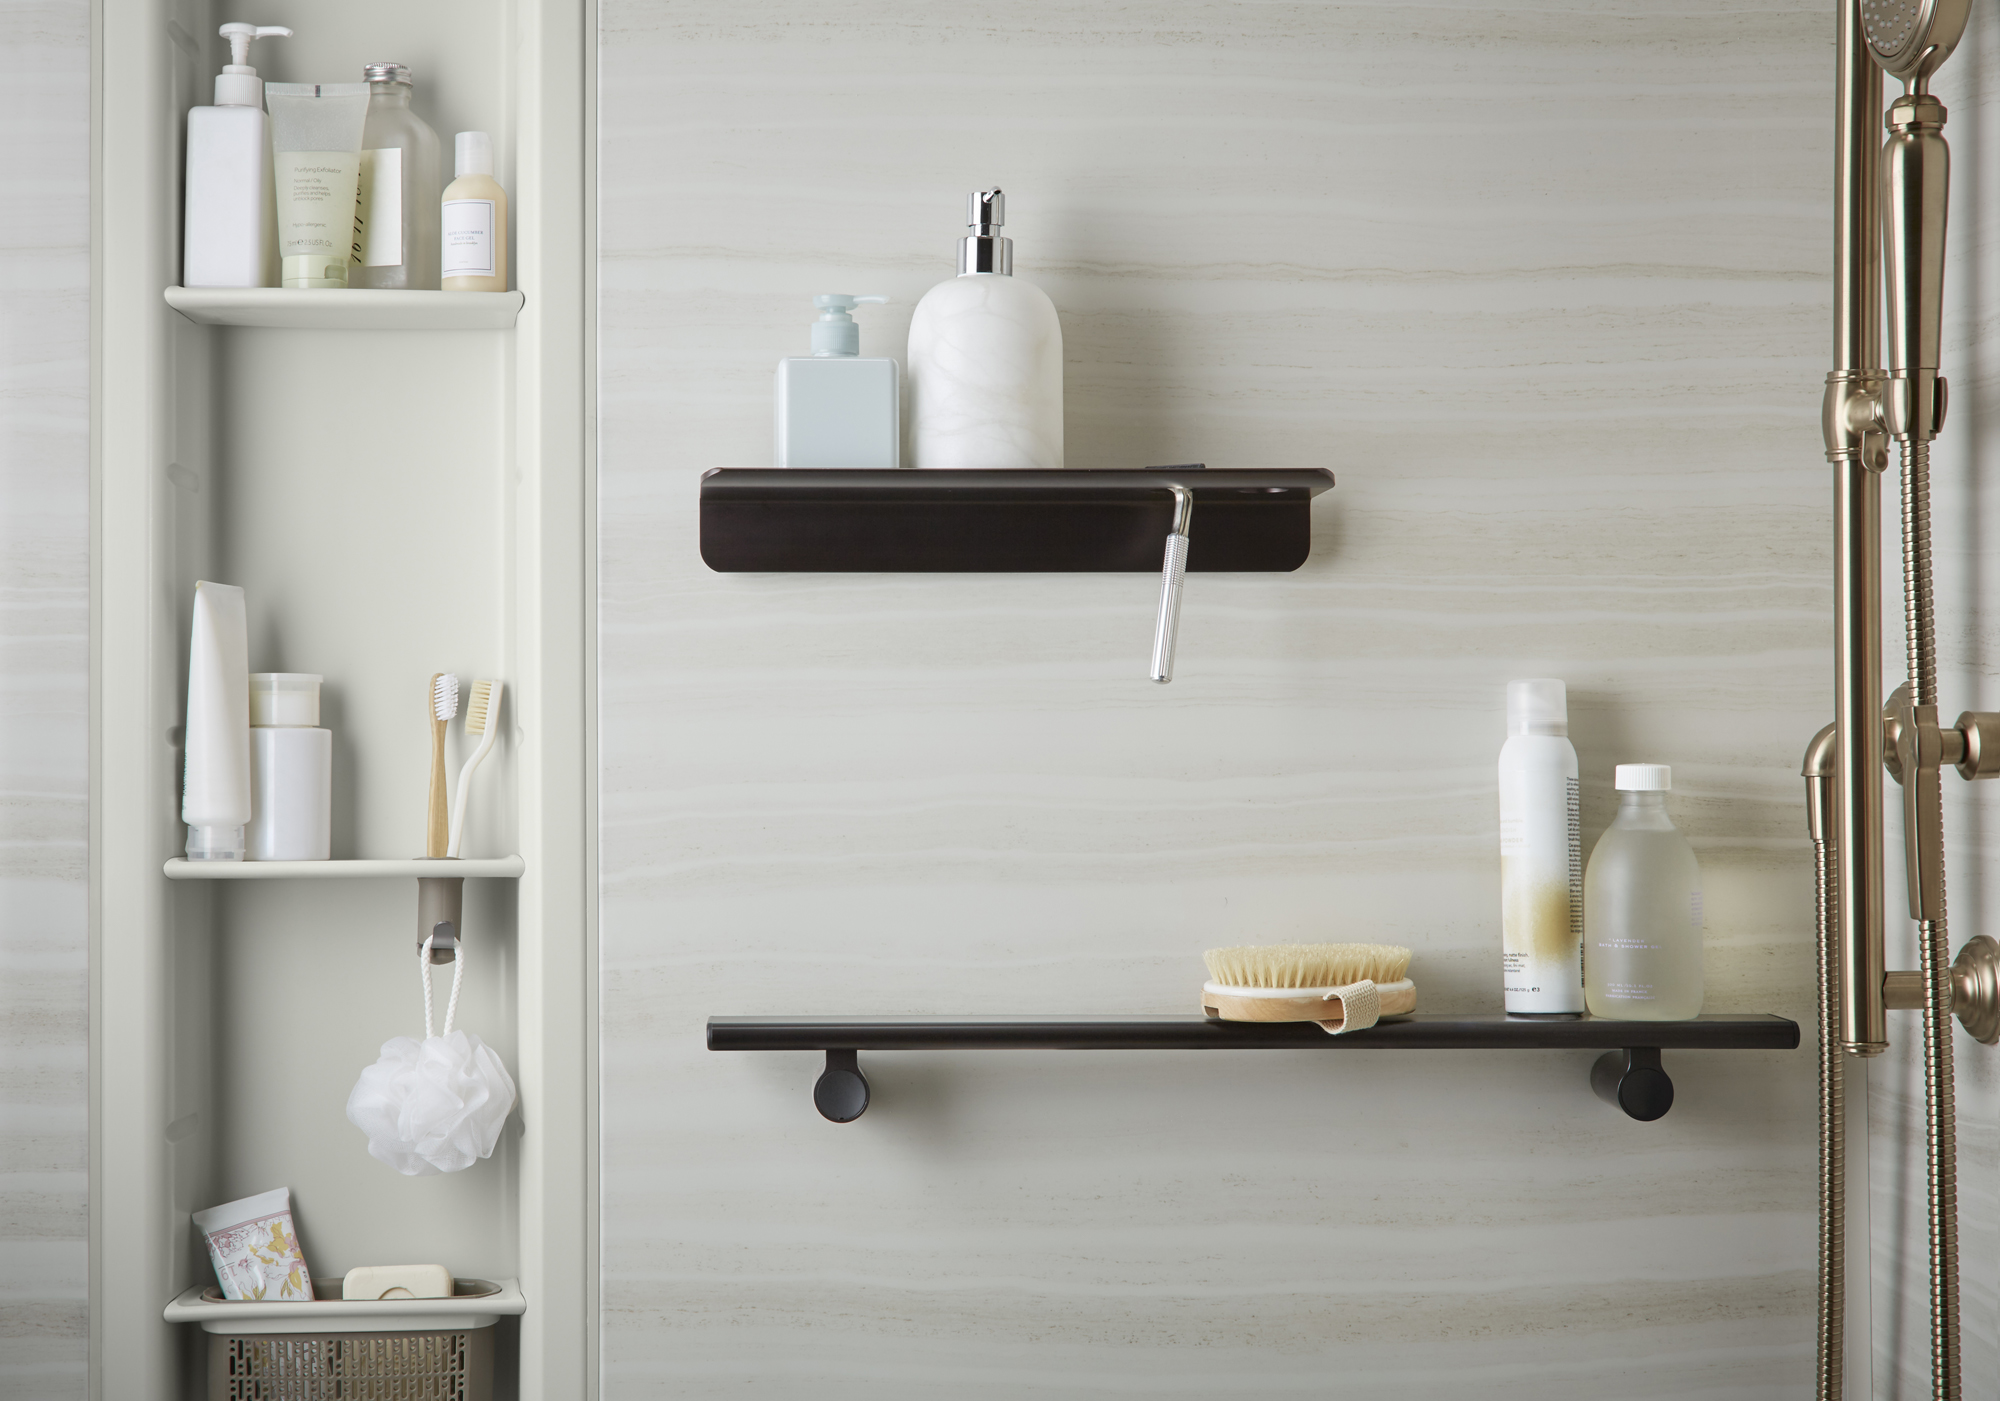 Choreograph® shower walls     Choreograph shower shelf     Choreograph shower barre     Choreograph Shower Locker®    A customizable shower solution lets you mix and match storage to fit your family's needs.